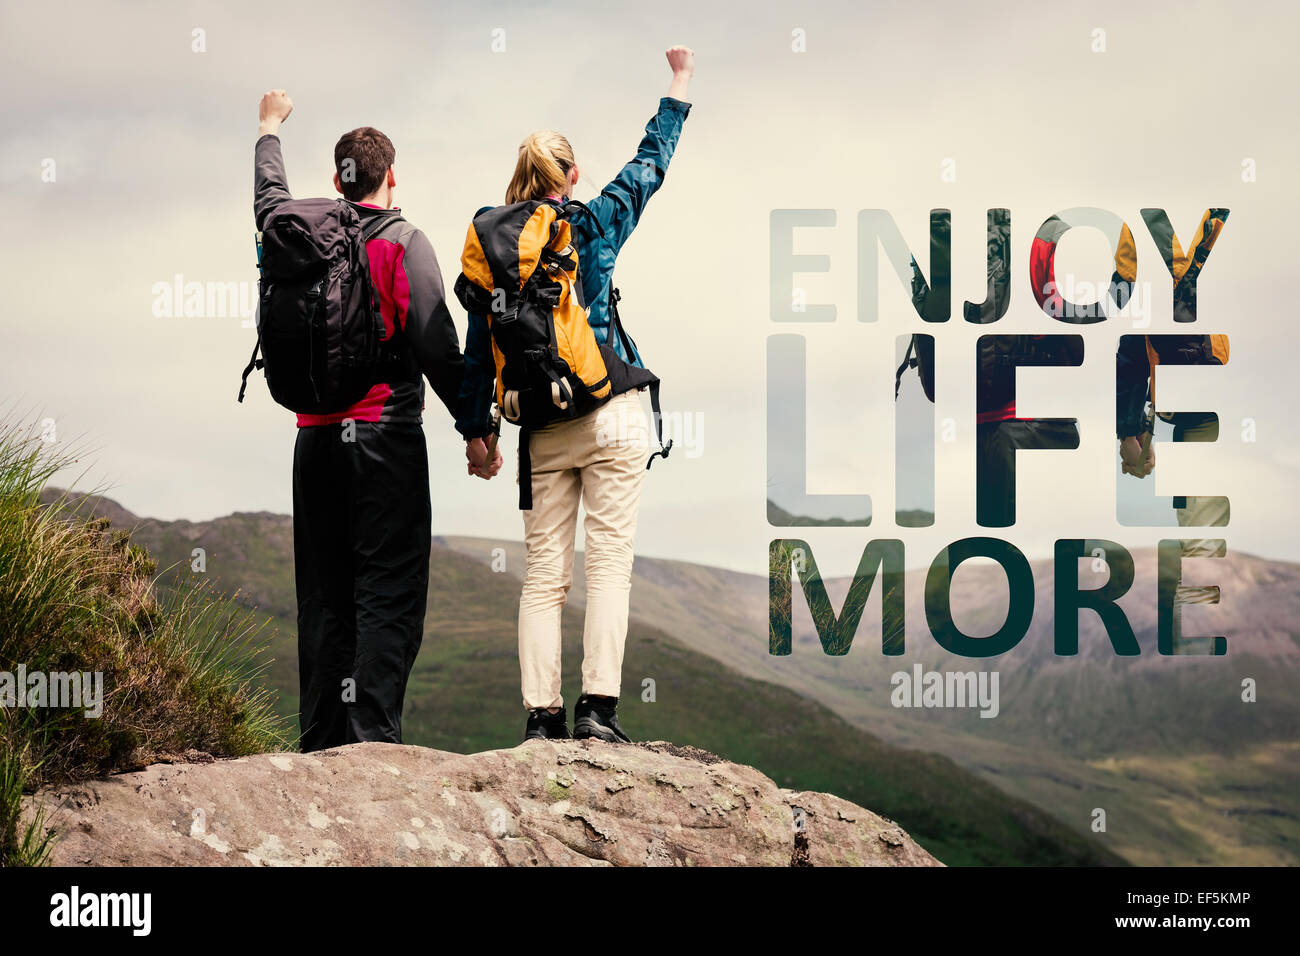 Composite image of excited couple reaching the top of their hike and cheering - Stock Image